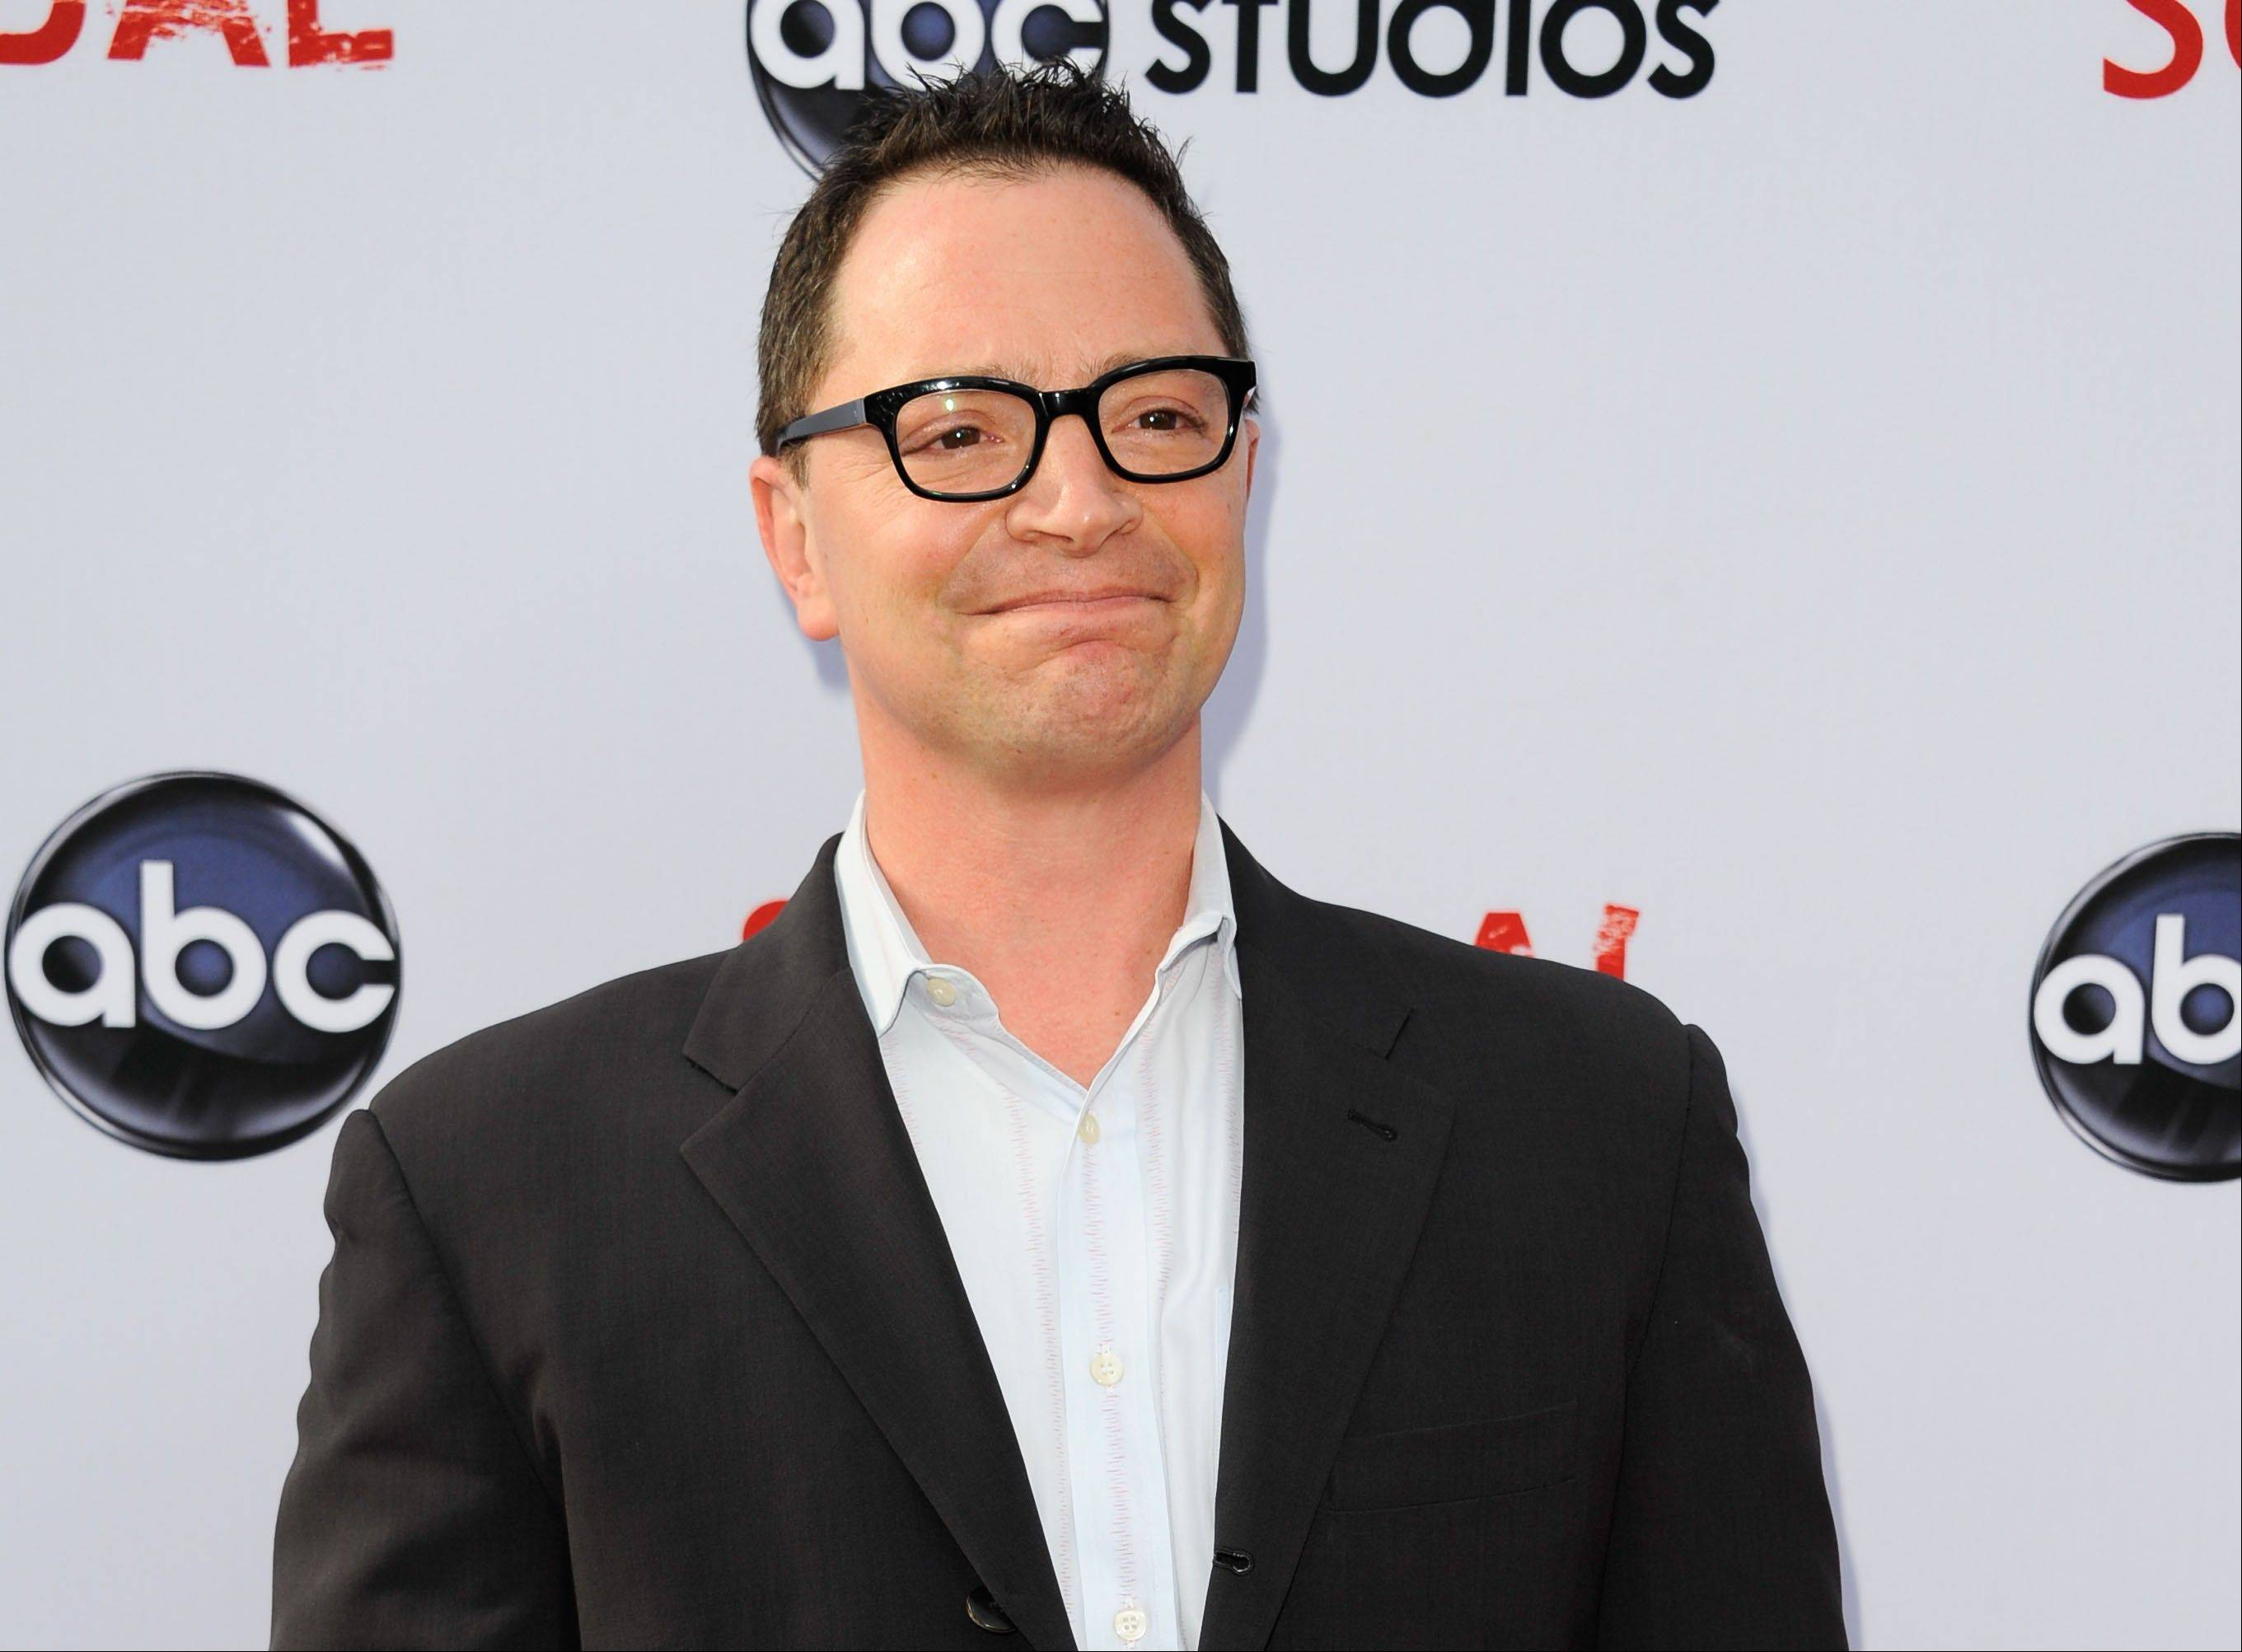 Actor Joshua Malina, who plays U.S. attorney David Rosen on �Scandal,� relishes having a presence on Twitter. His tweets can range from biting to witty to (as he described them in a recent interview) �self-promotion and dumb jokes.�